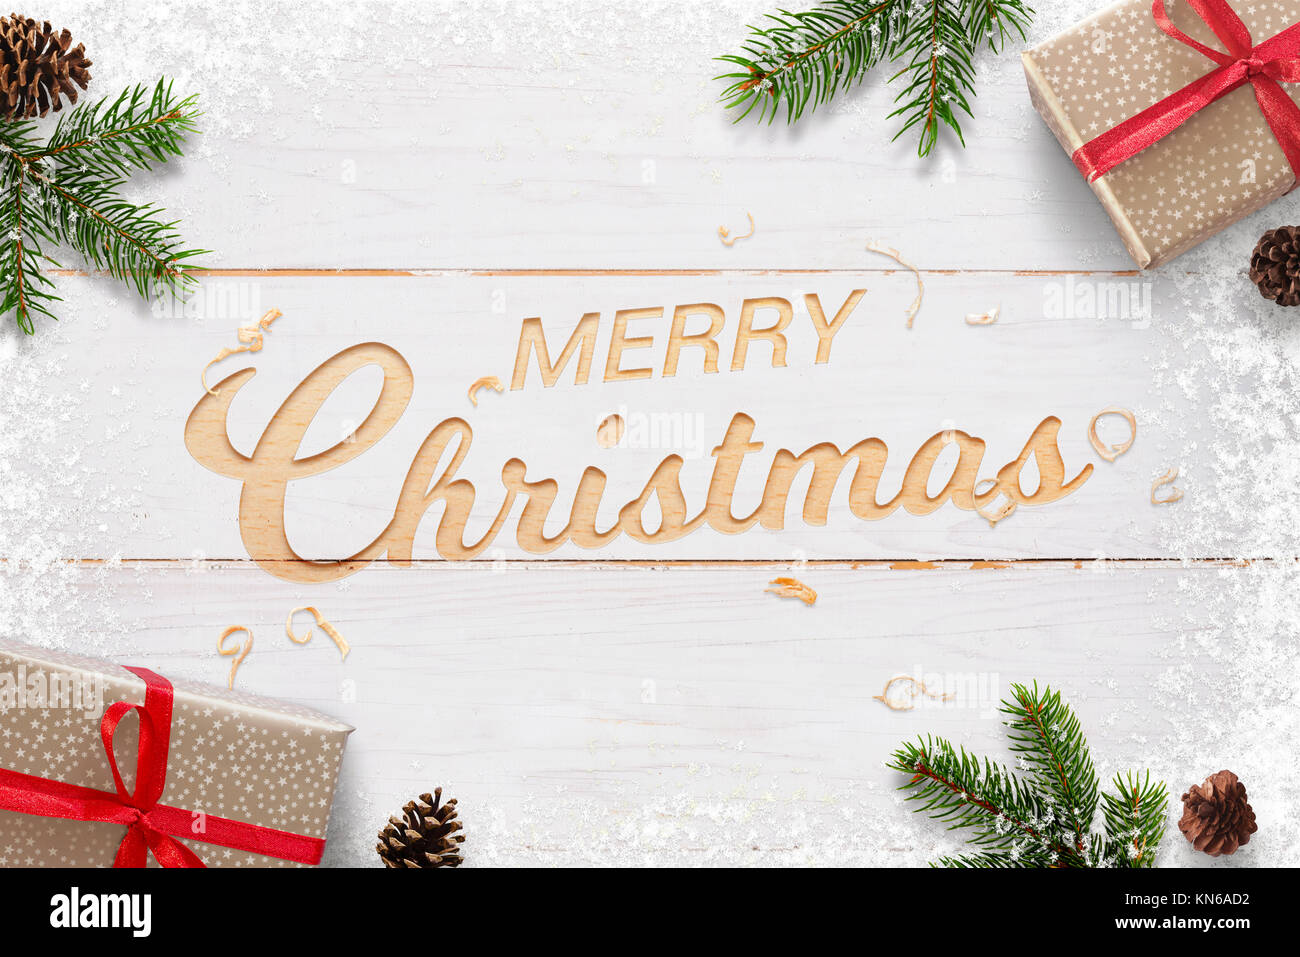 Merry Christmas text hand carved in white woodej surface surrounded with Christmas gifts, fir branches and pinecones. - Stock Image